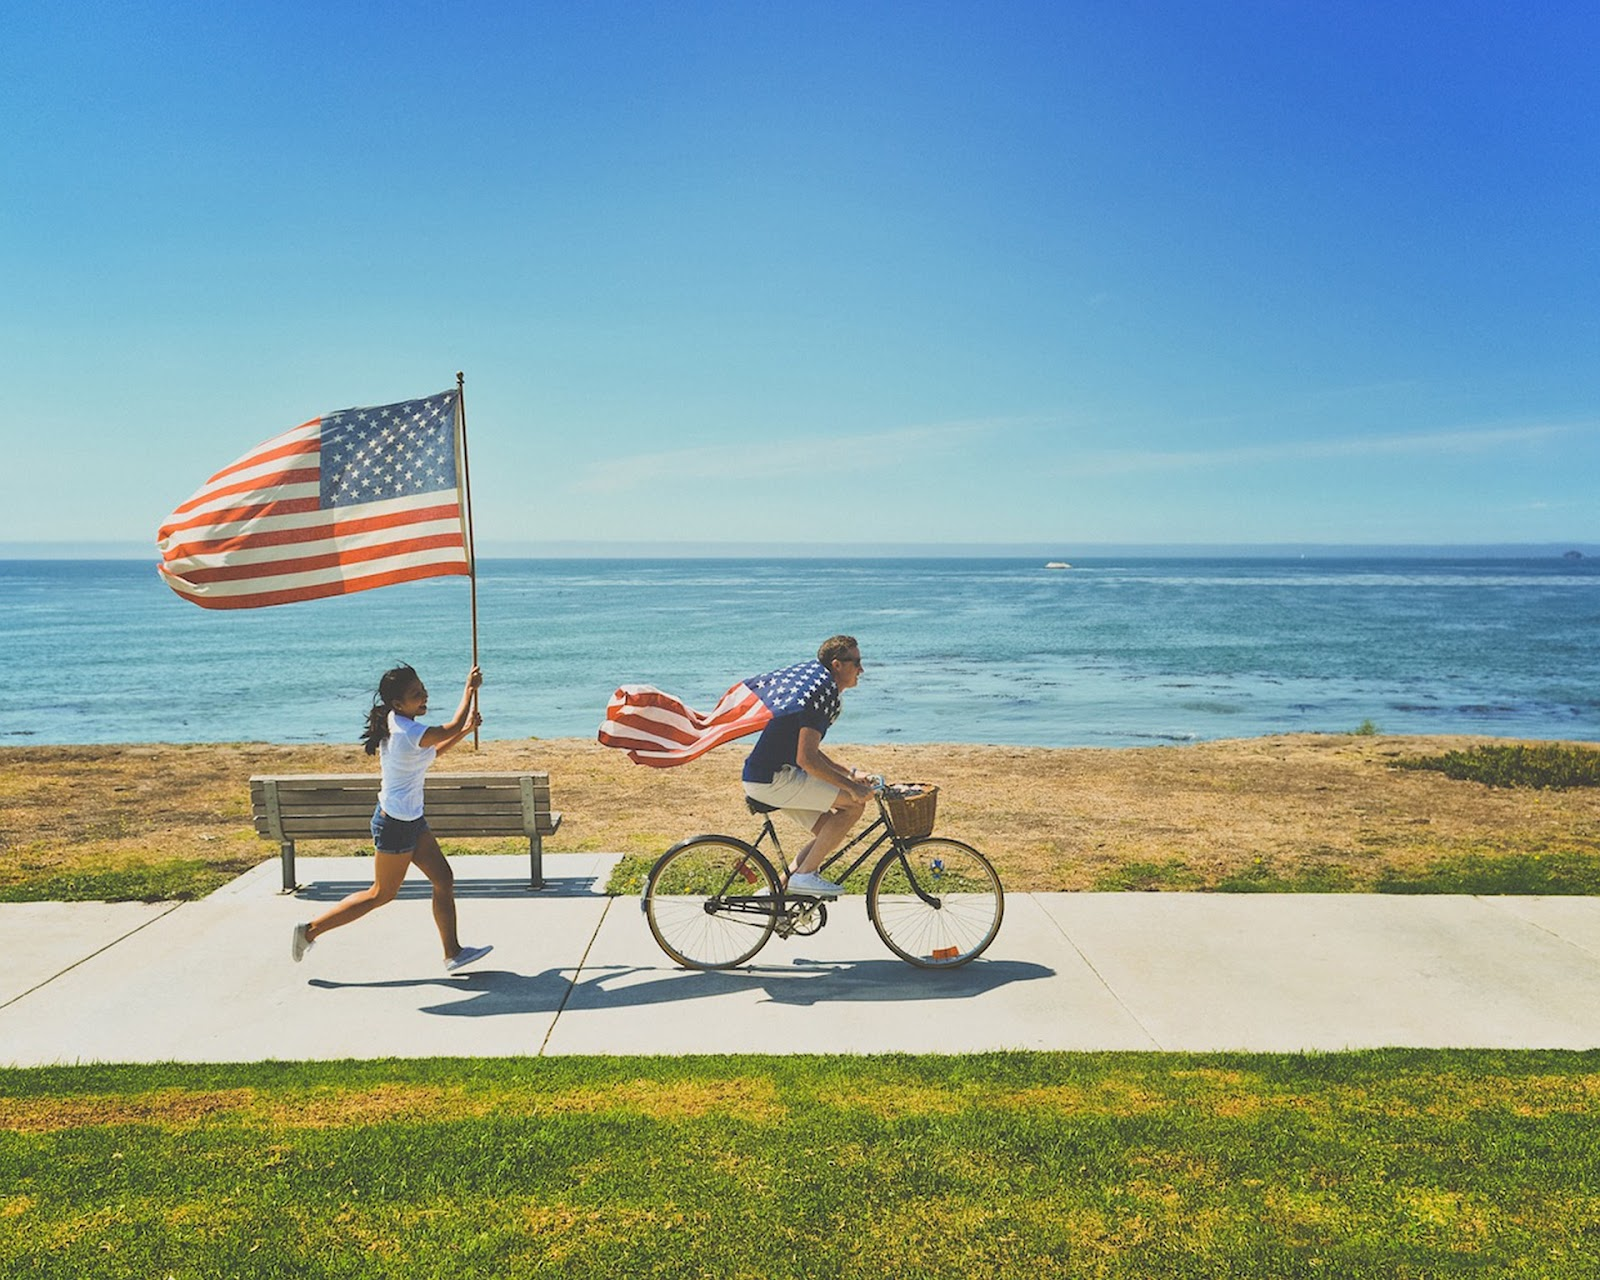 a boy riding his bike while using an American flag as a cape, and a girl running behind him while holding up another American flag